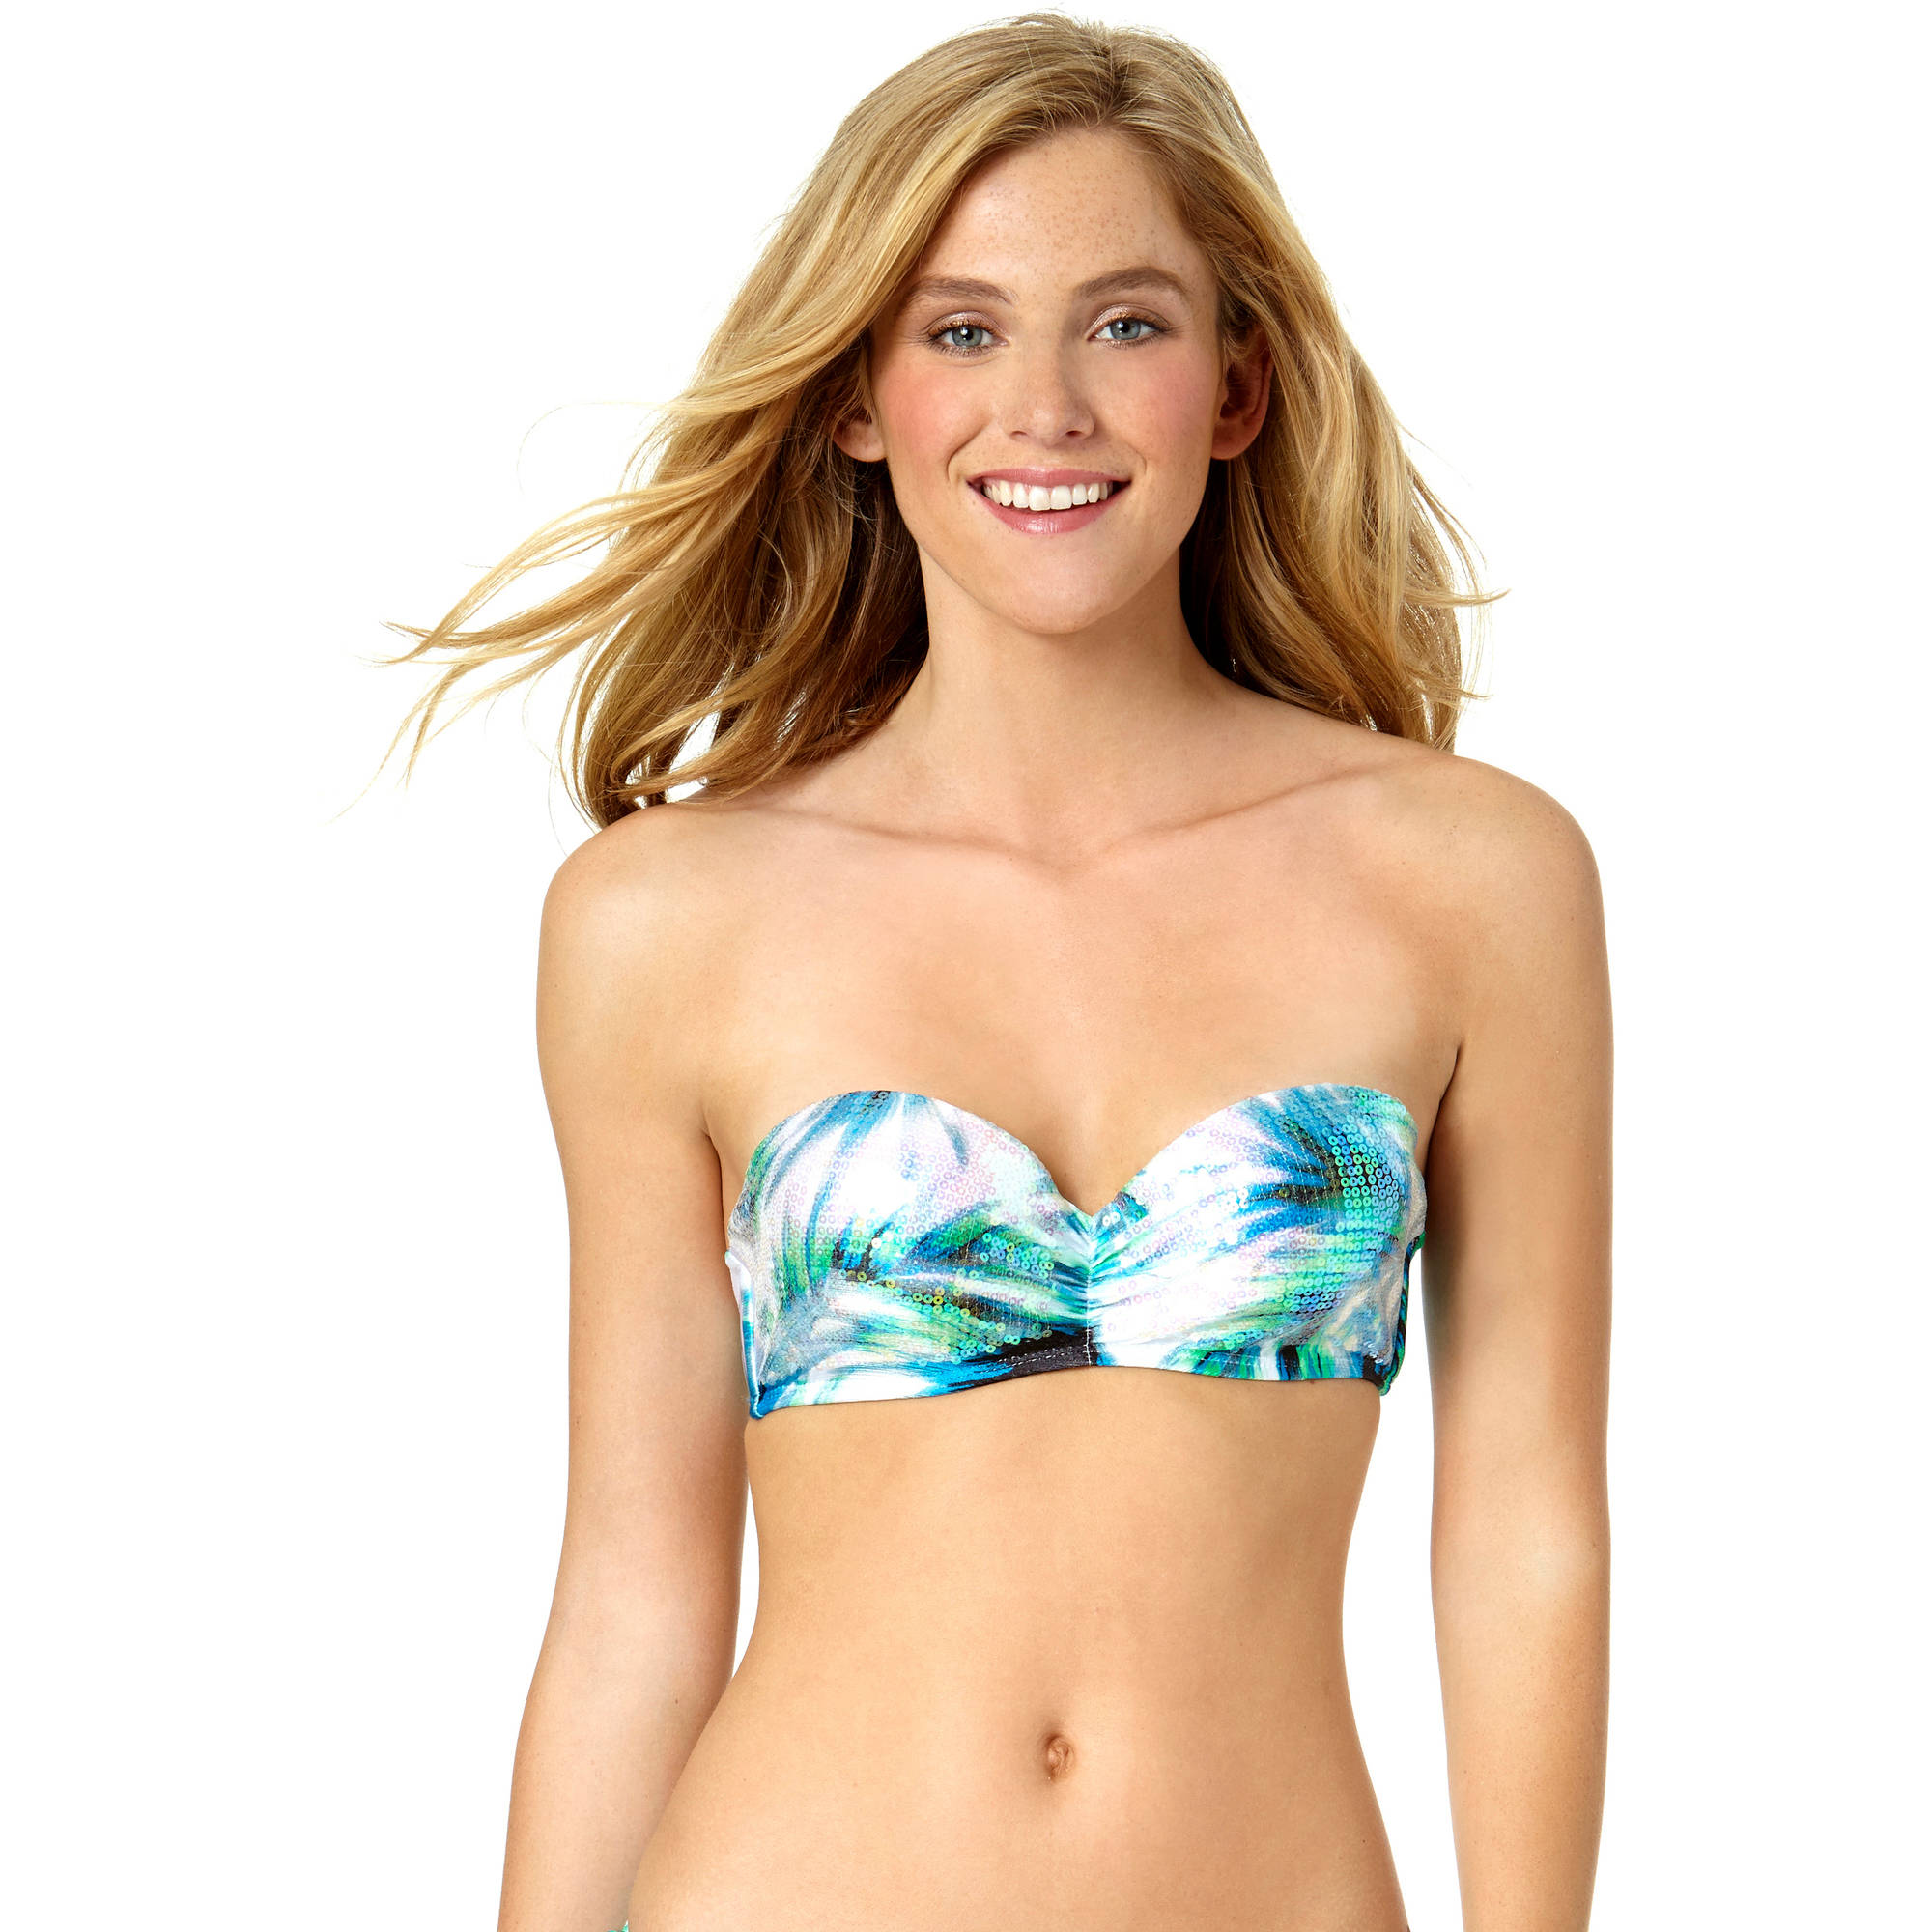 Tahiti Women's Sequin Underwire Push Up Bandeau Bikini Top